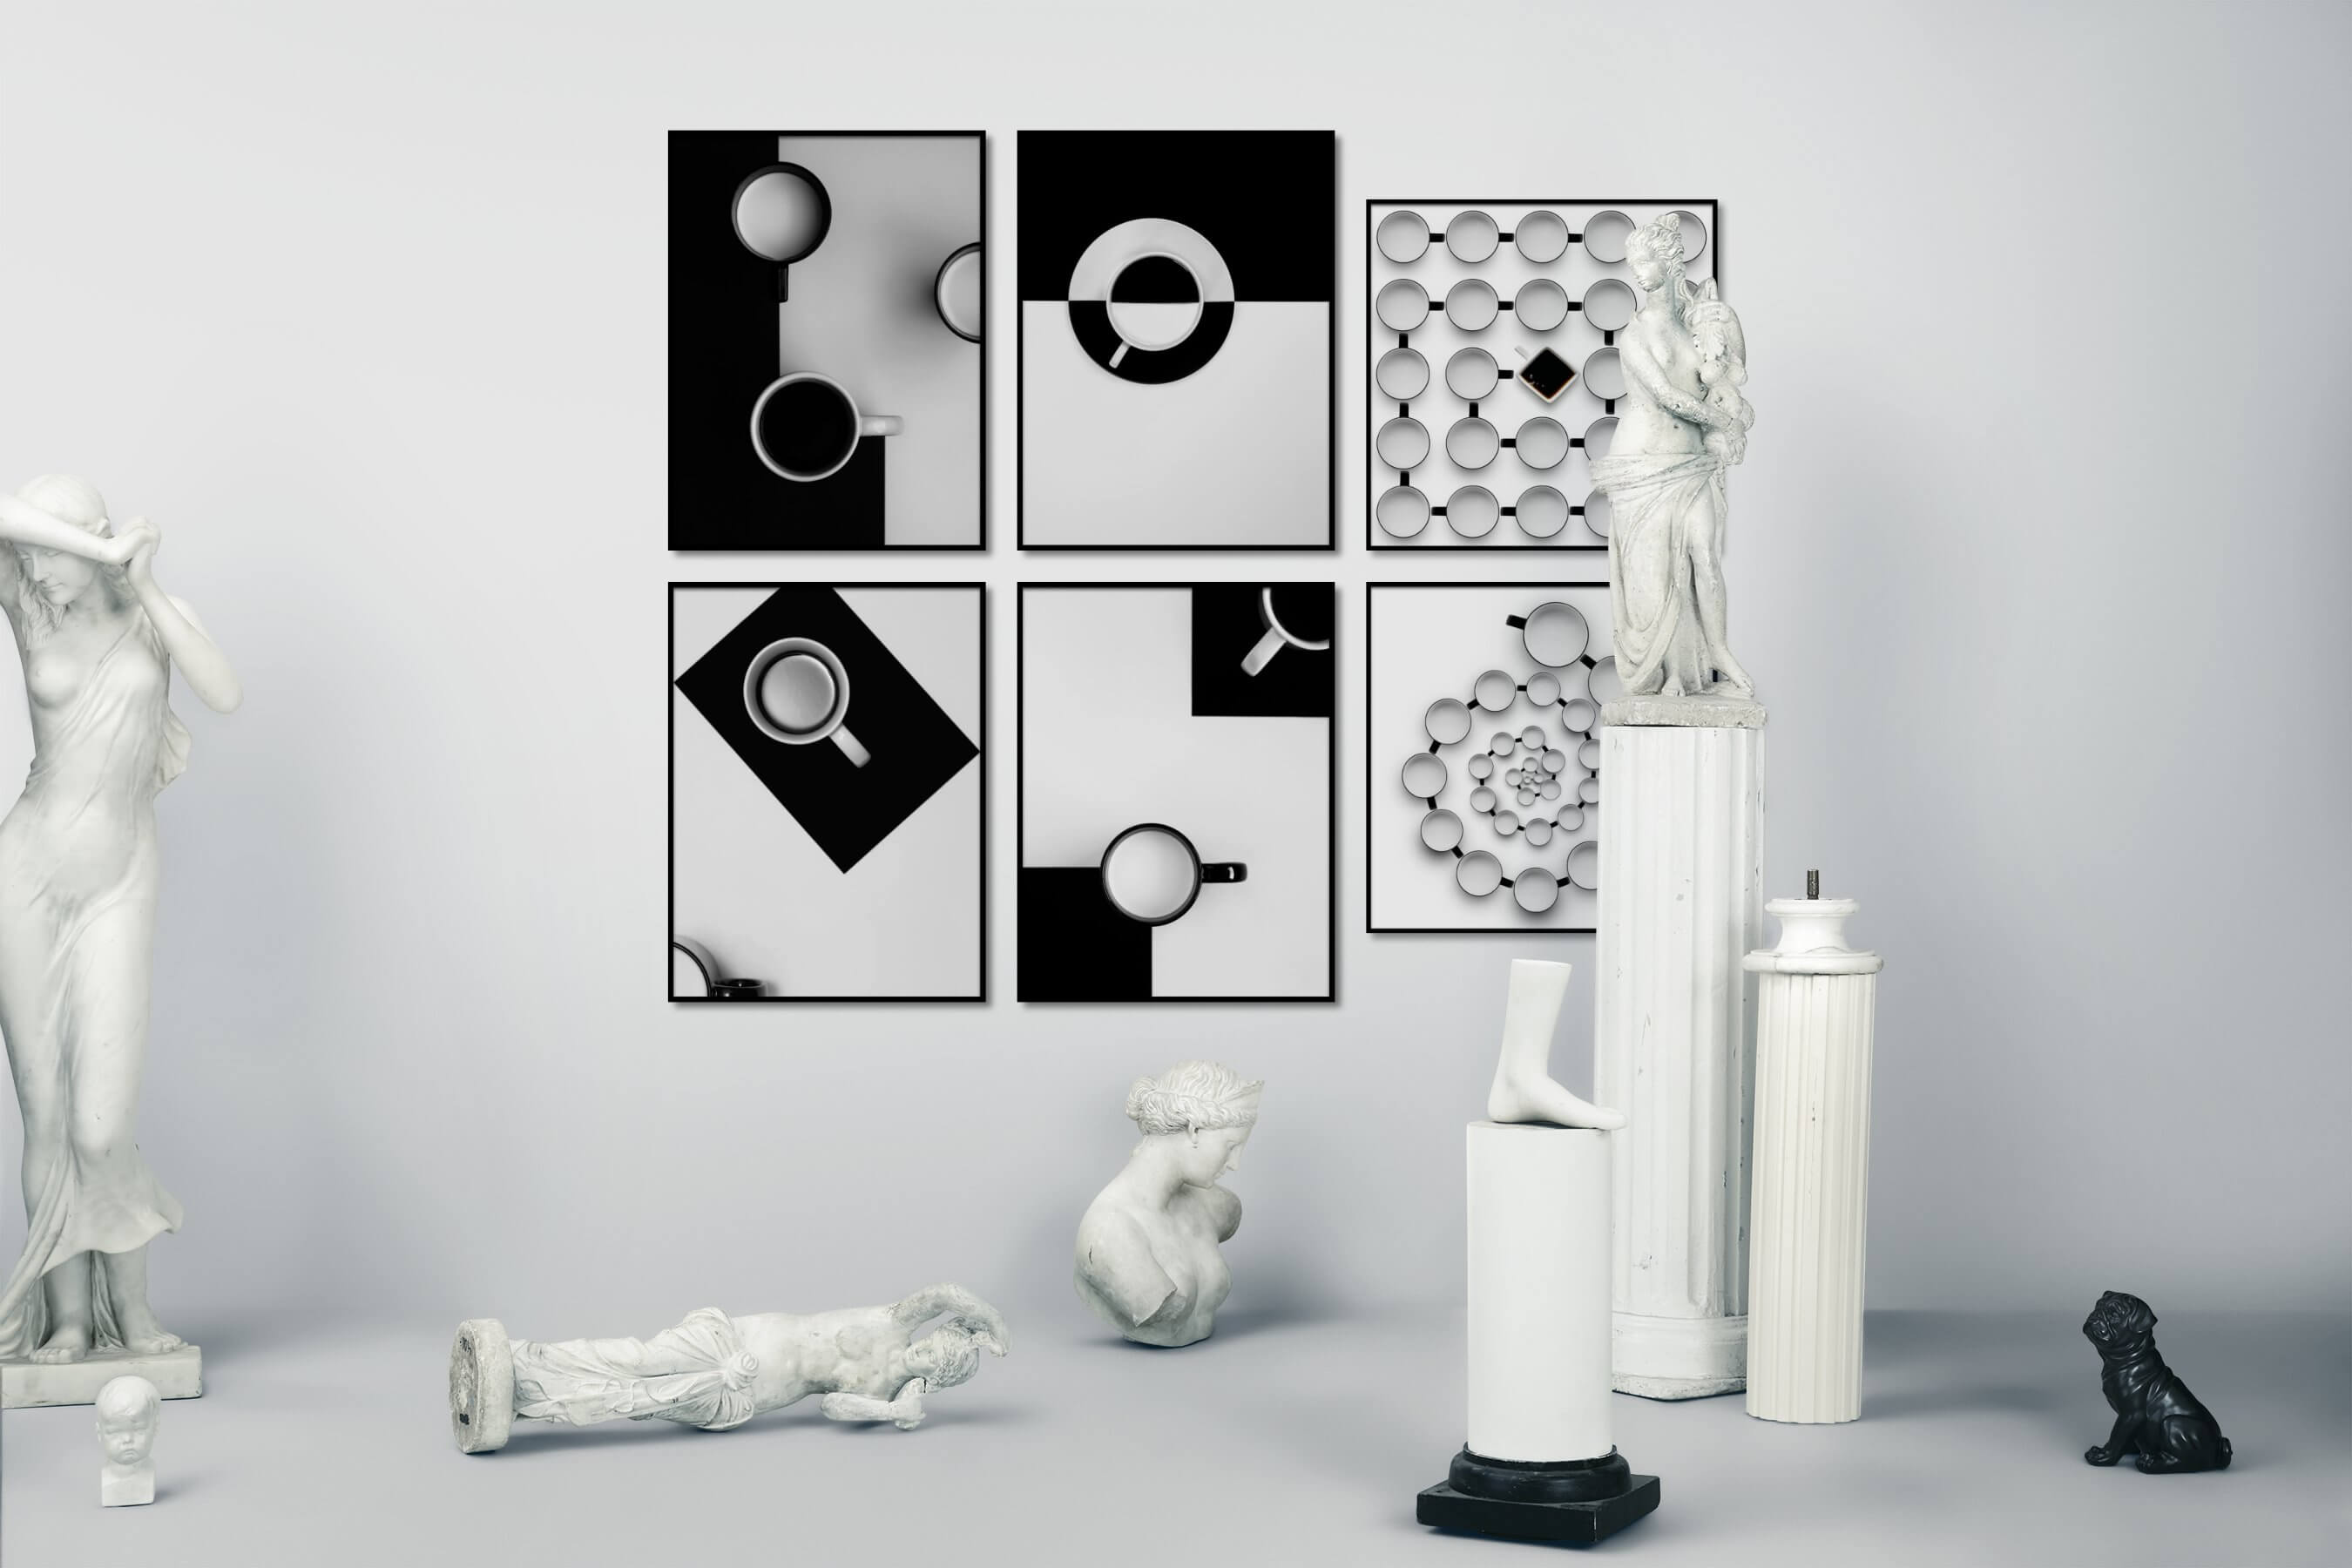 Gallery wall idea with six framed pictures arranged on a wall depicting Black & White, For the Minimalist, and Bright Tones